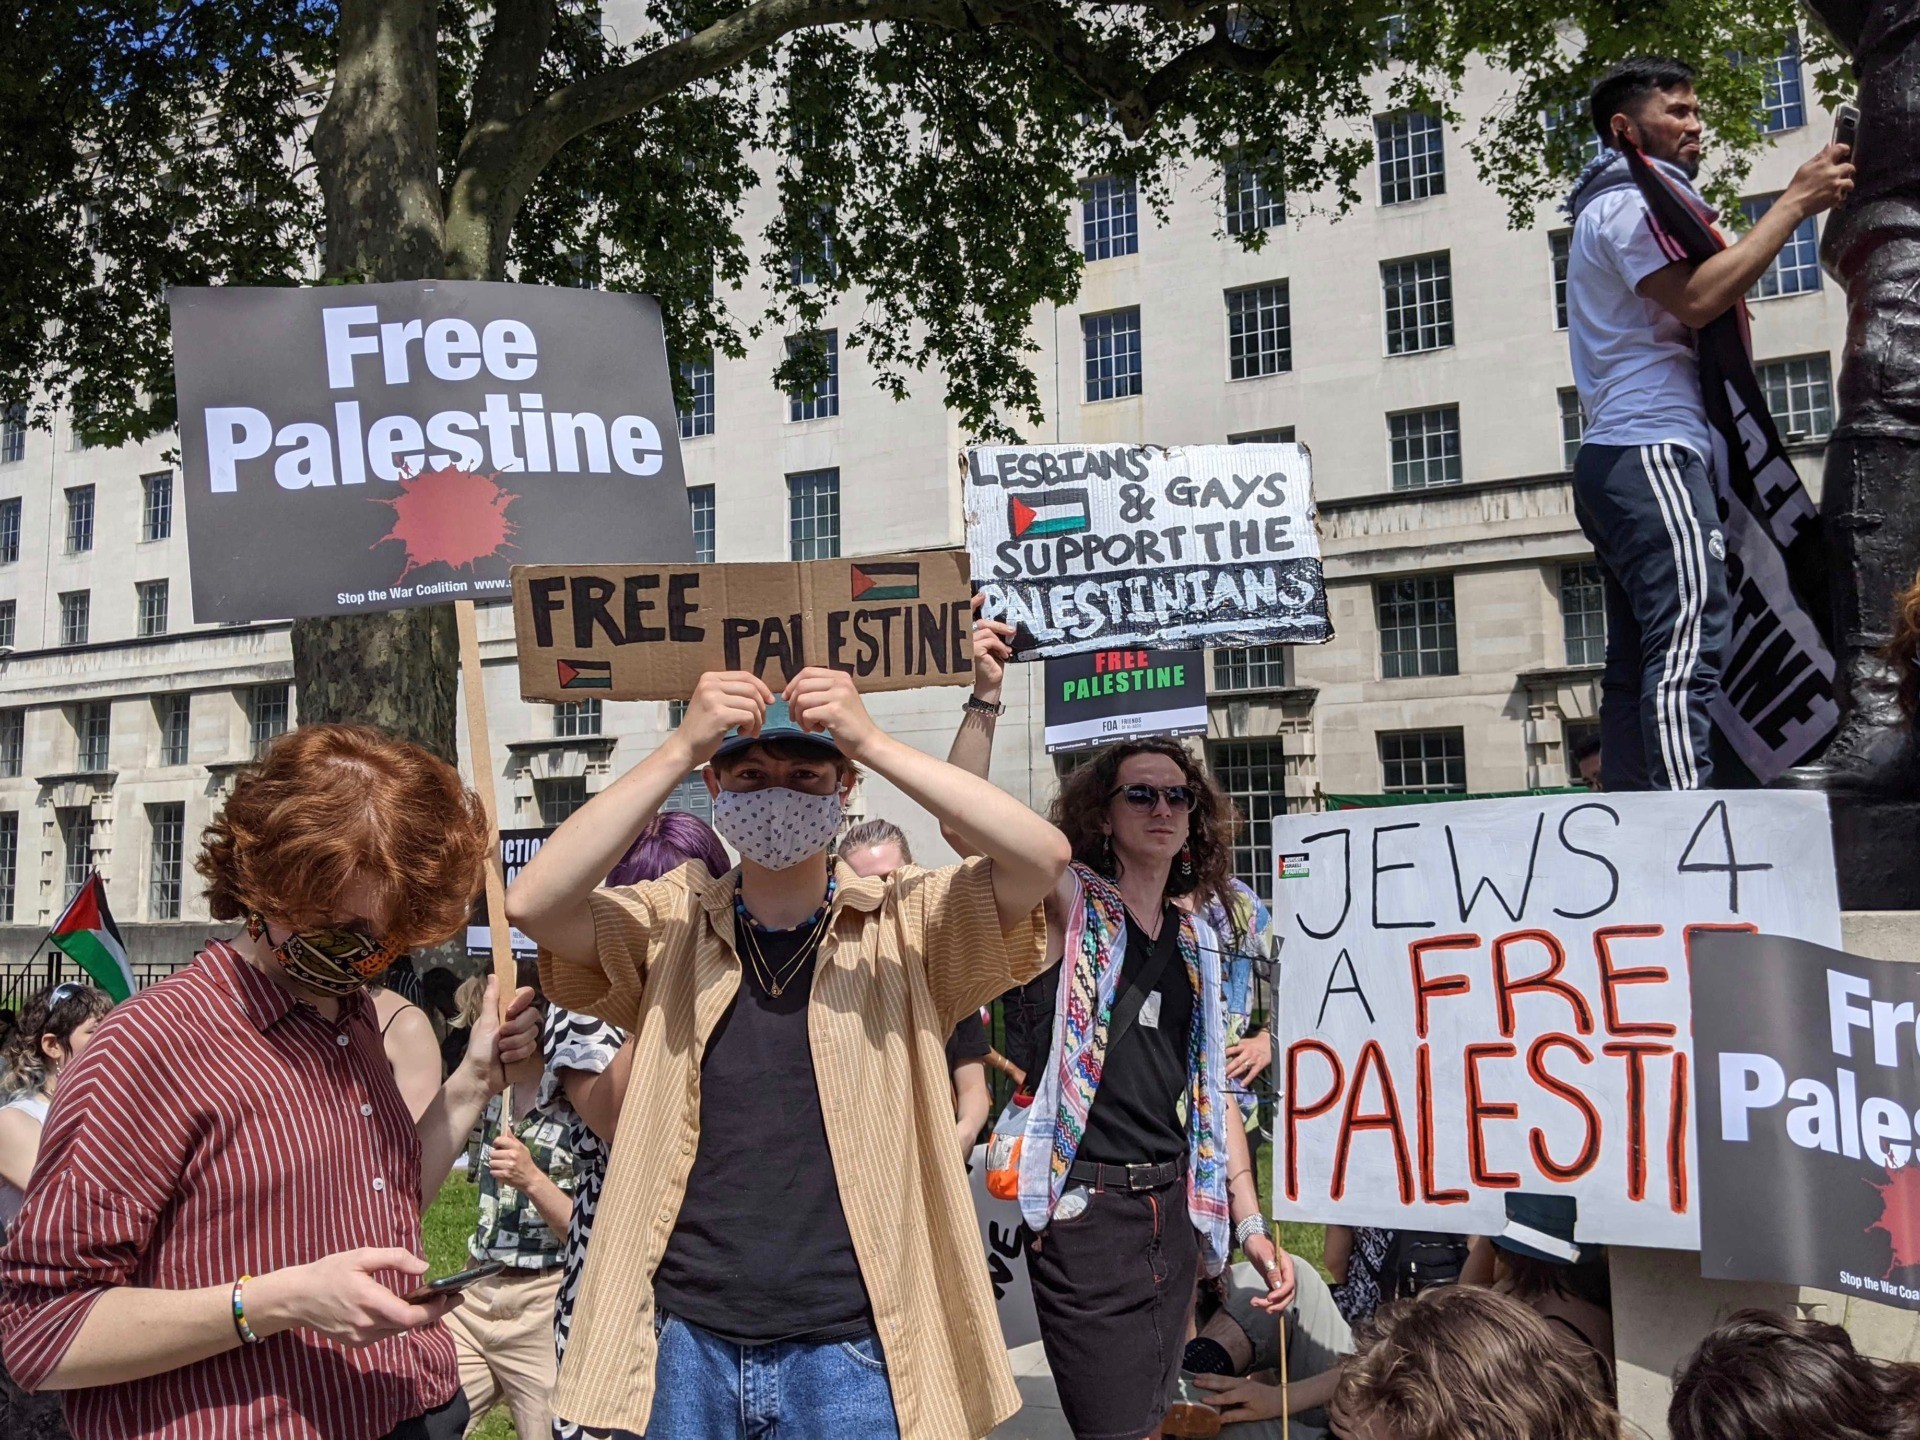 """Anti-Isreal protester holds a placard reading """"Lesbians and Gays Support the Palestinians"""" at a Downing Street protest. June 12th, 2021. Kurt Zindulka, Breitbart News"""